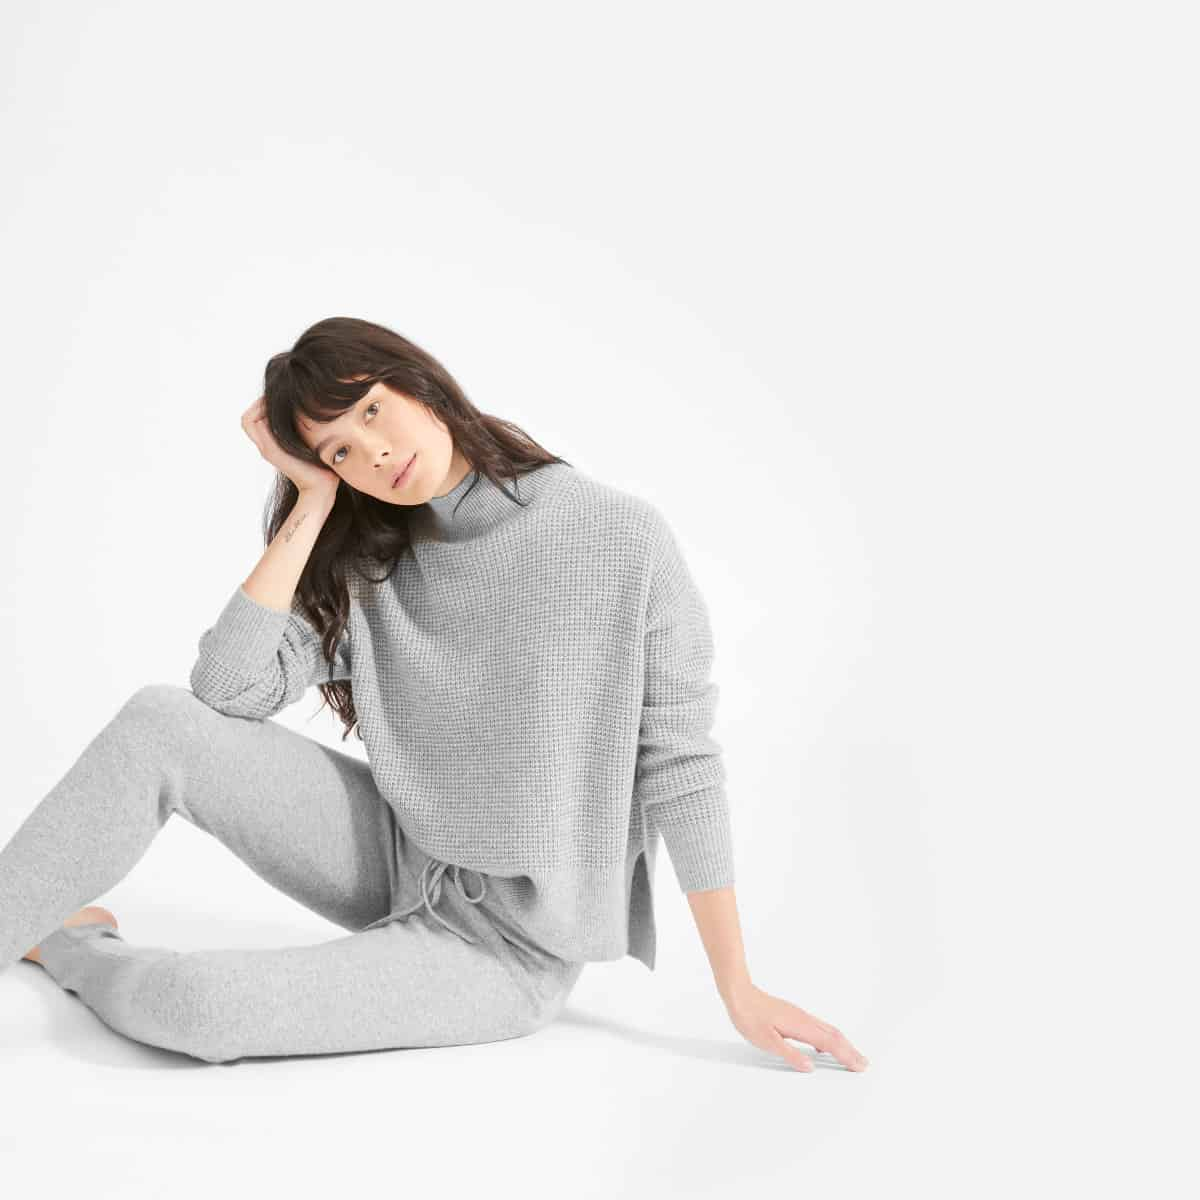 ethical outfits for working at home